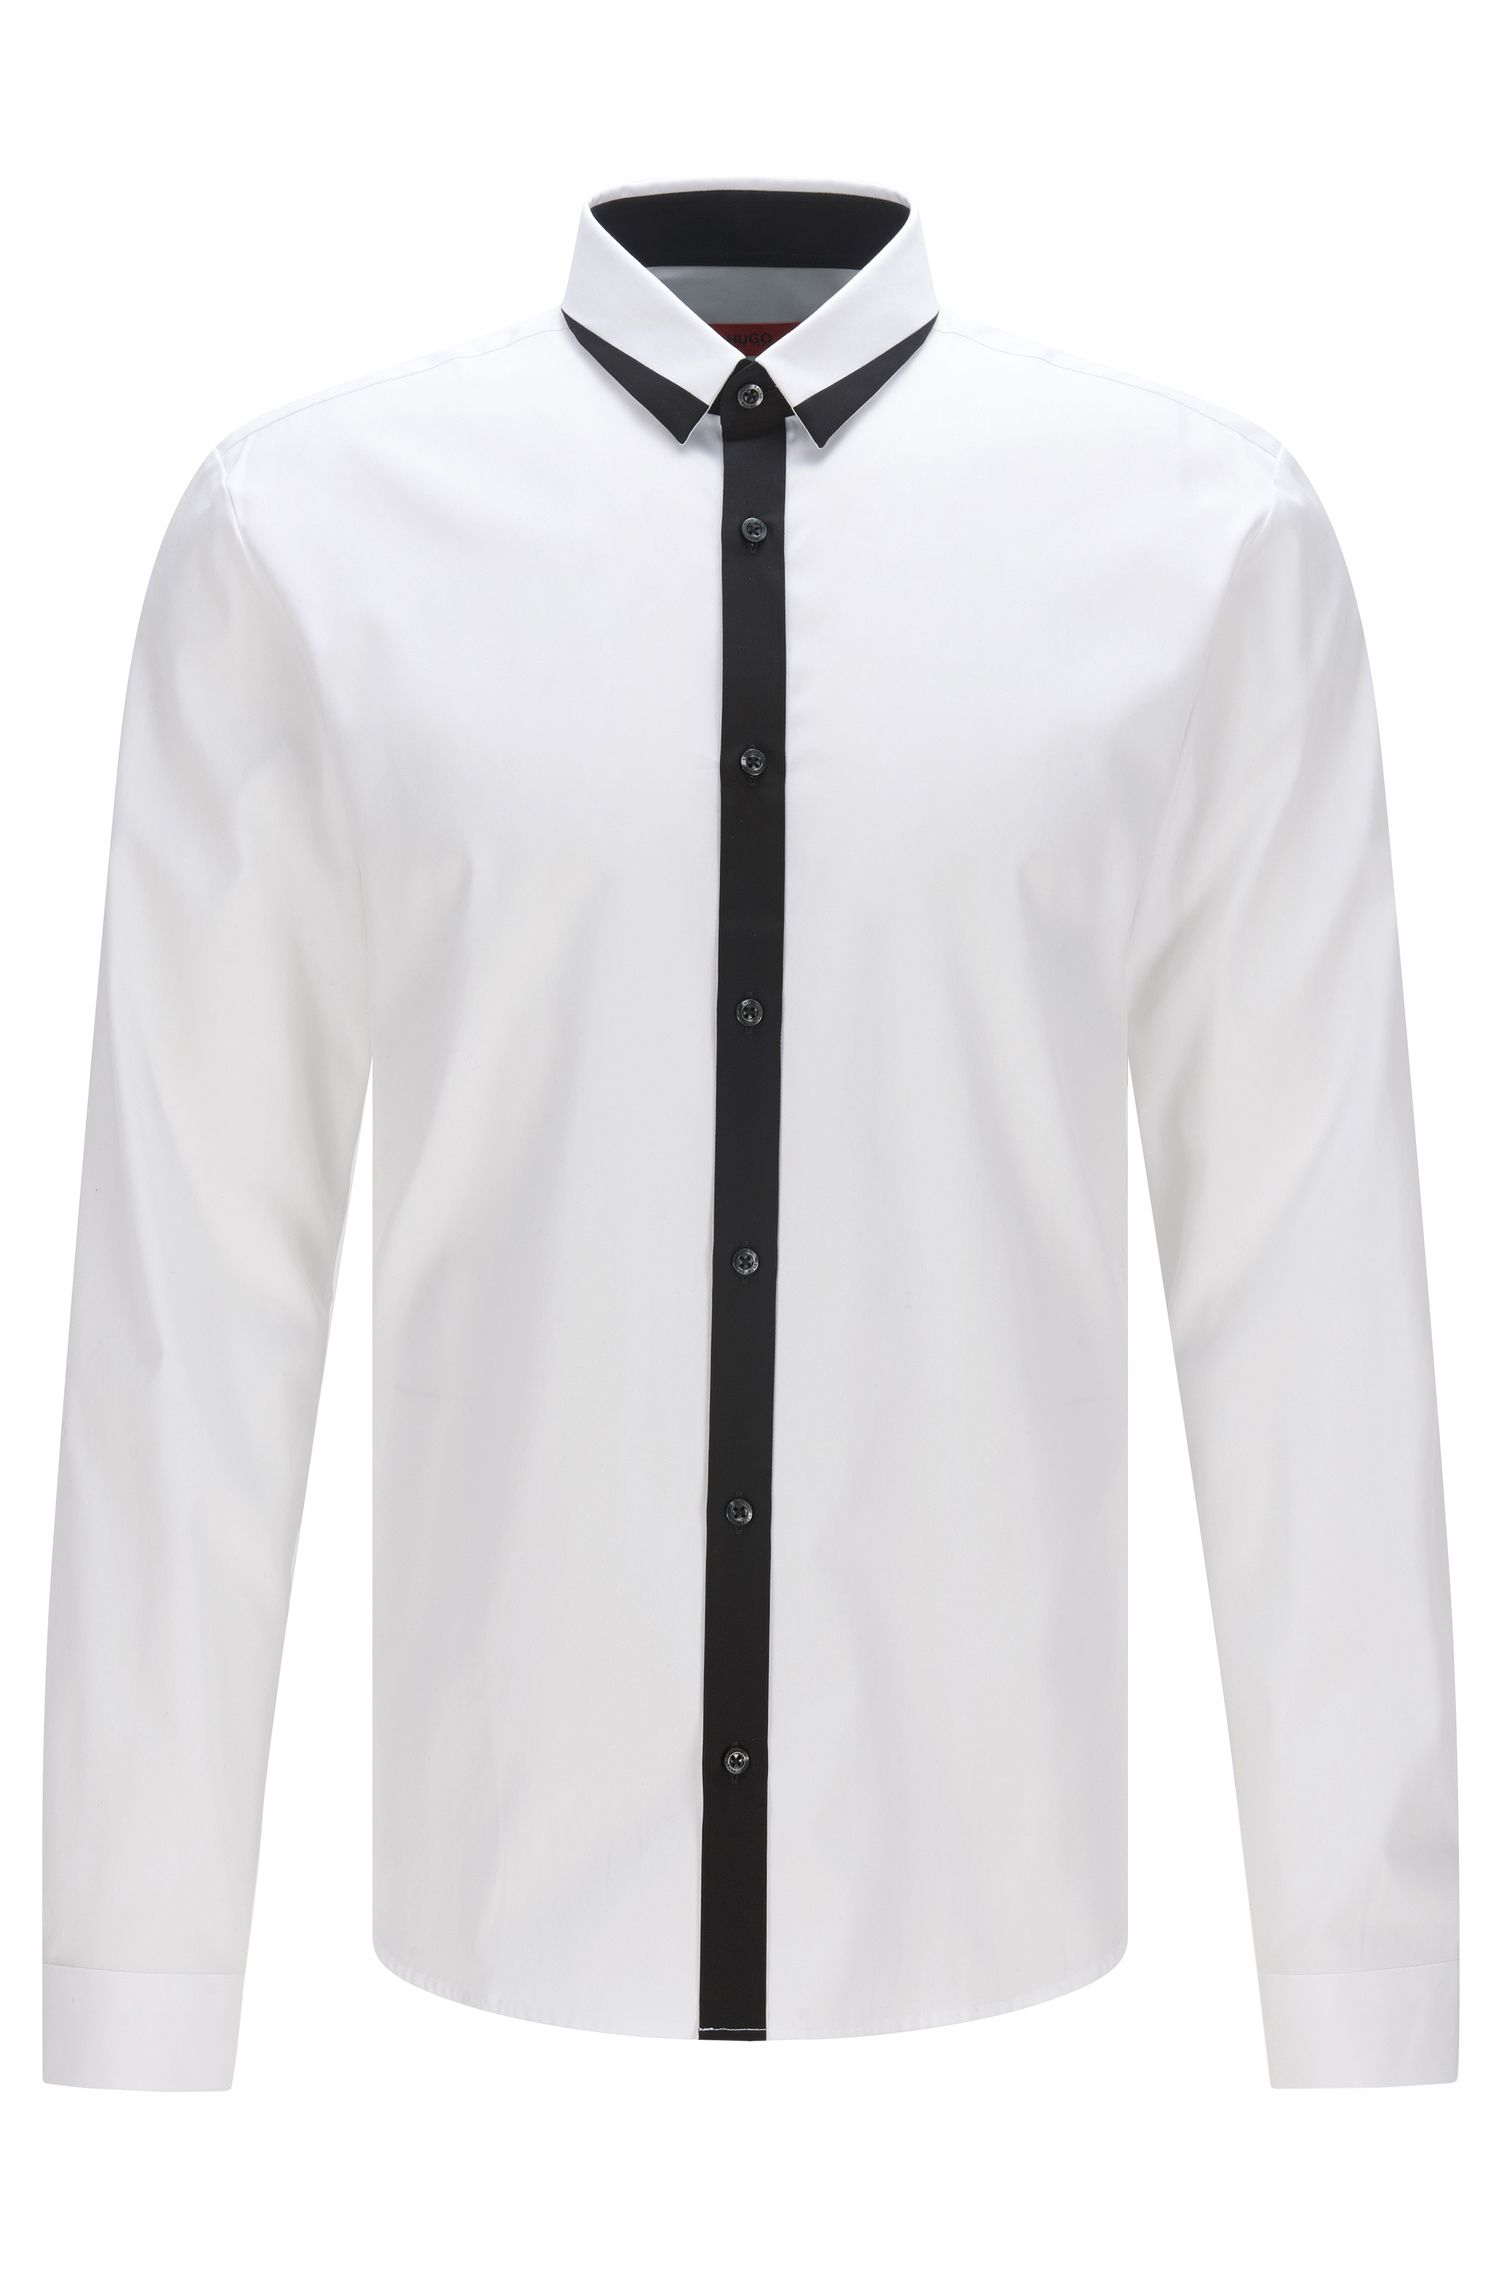 Trimmed Cotton Button Down Shirt, Extra Slim Fit | Egberto